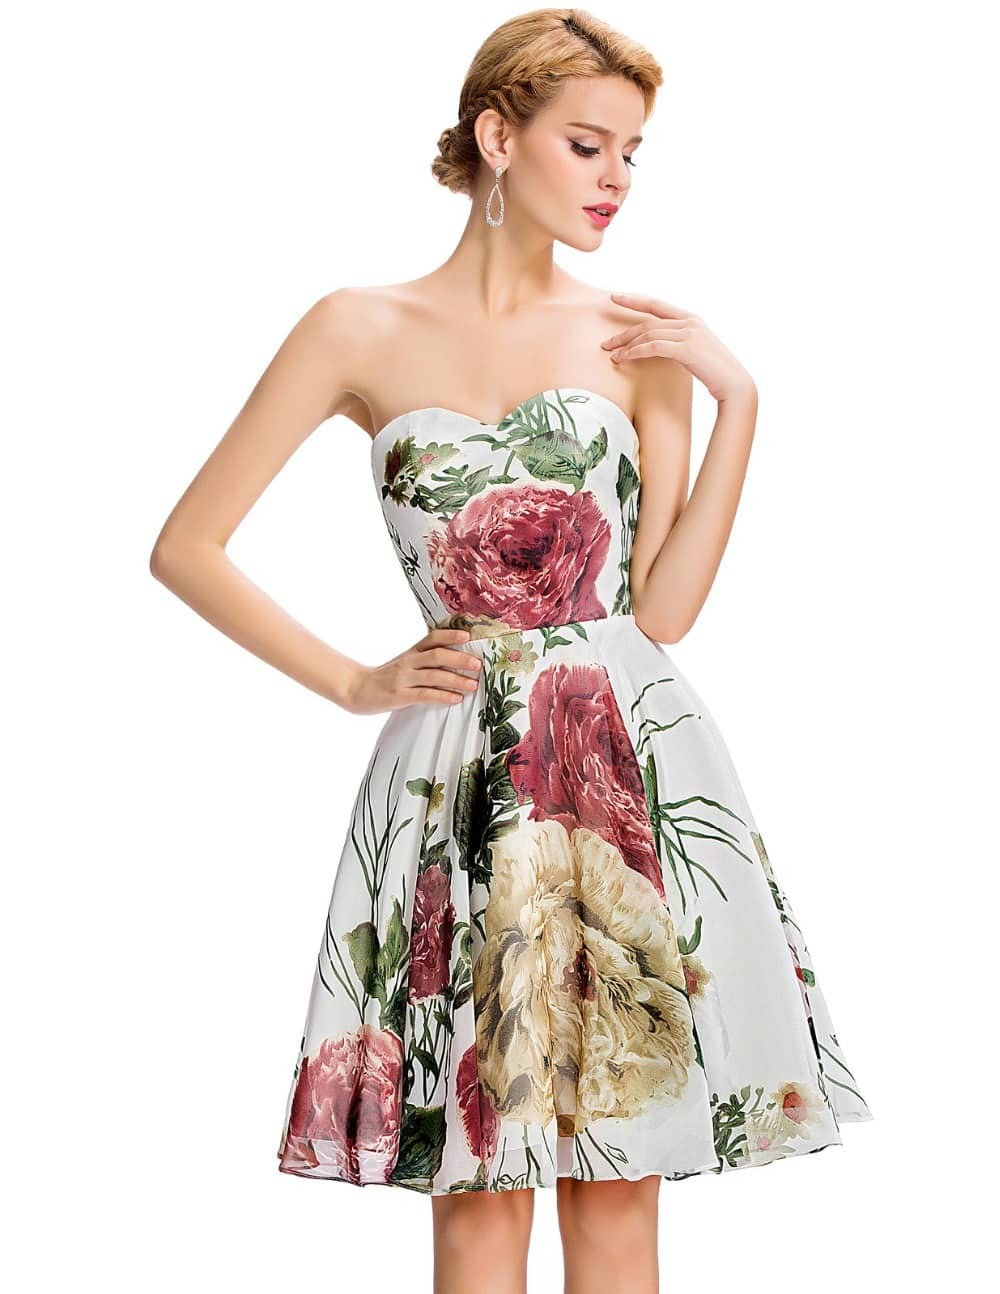 Marianne vintage floral chiffon party dress-front